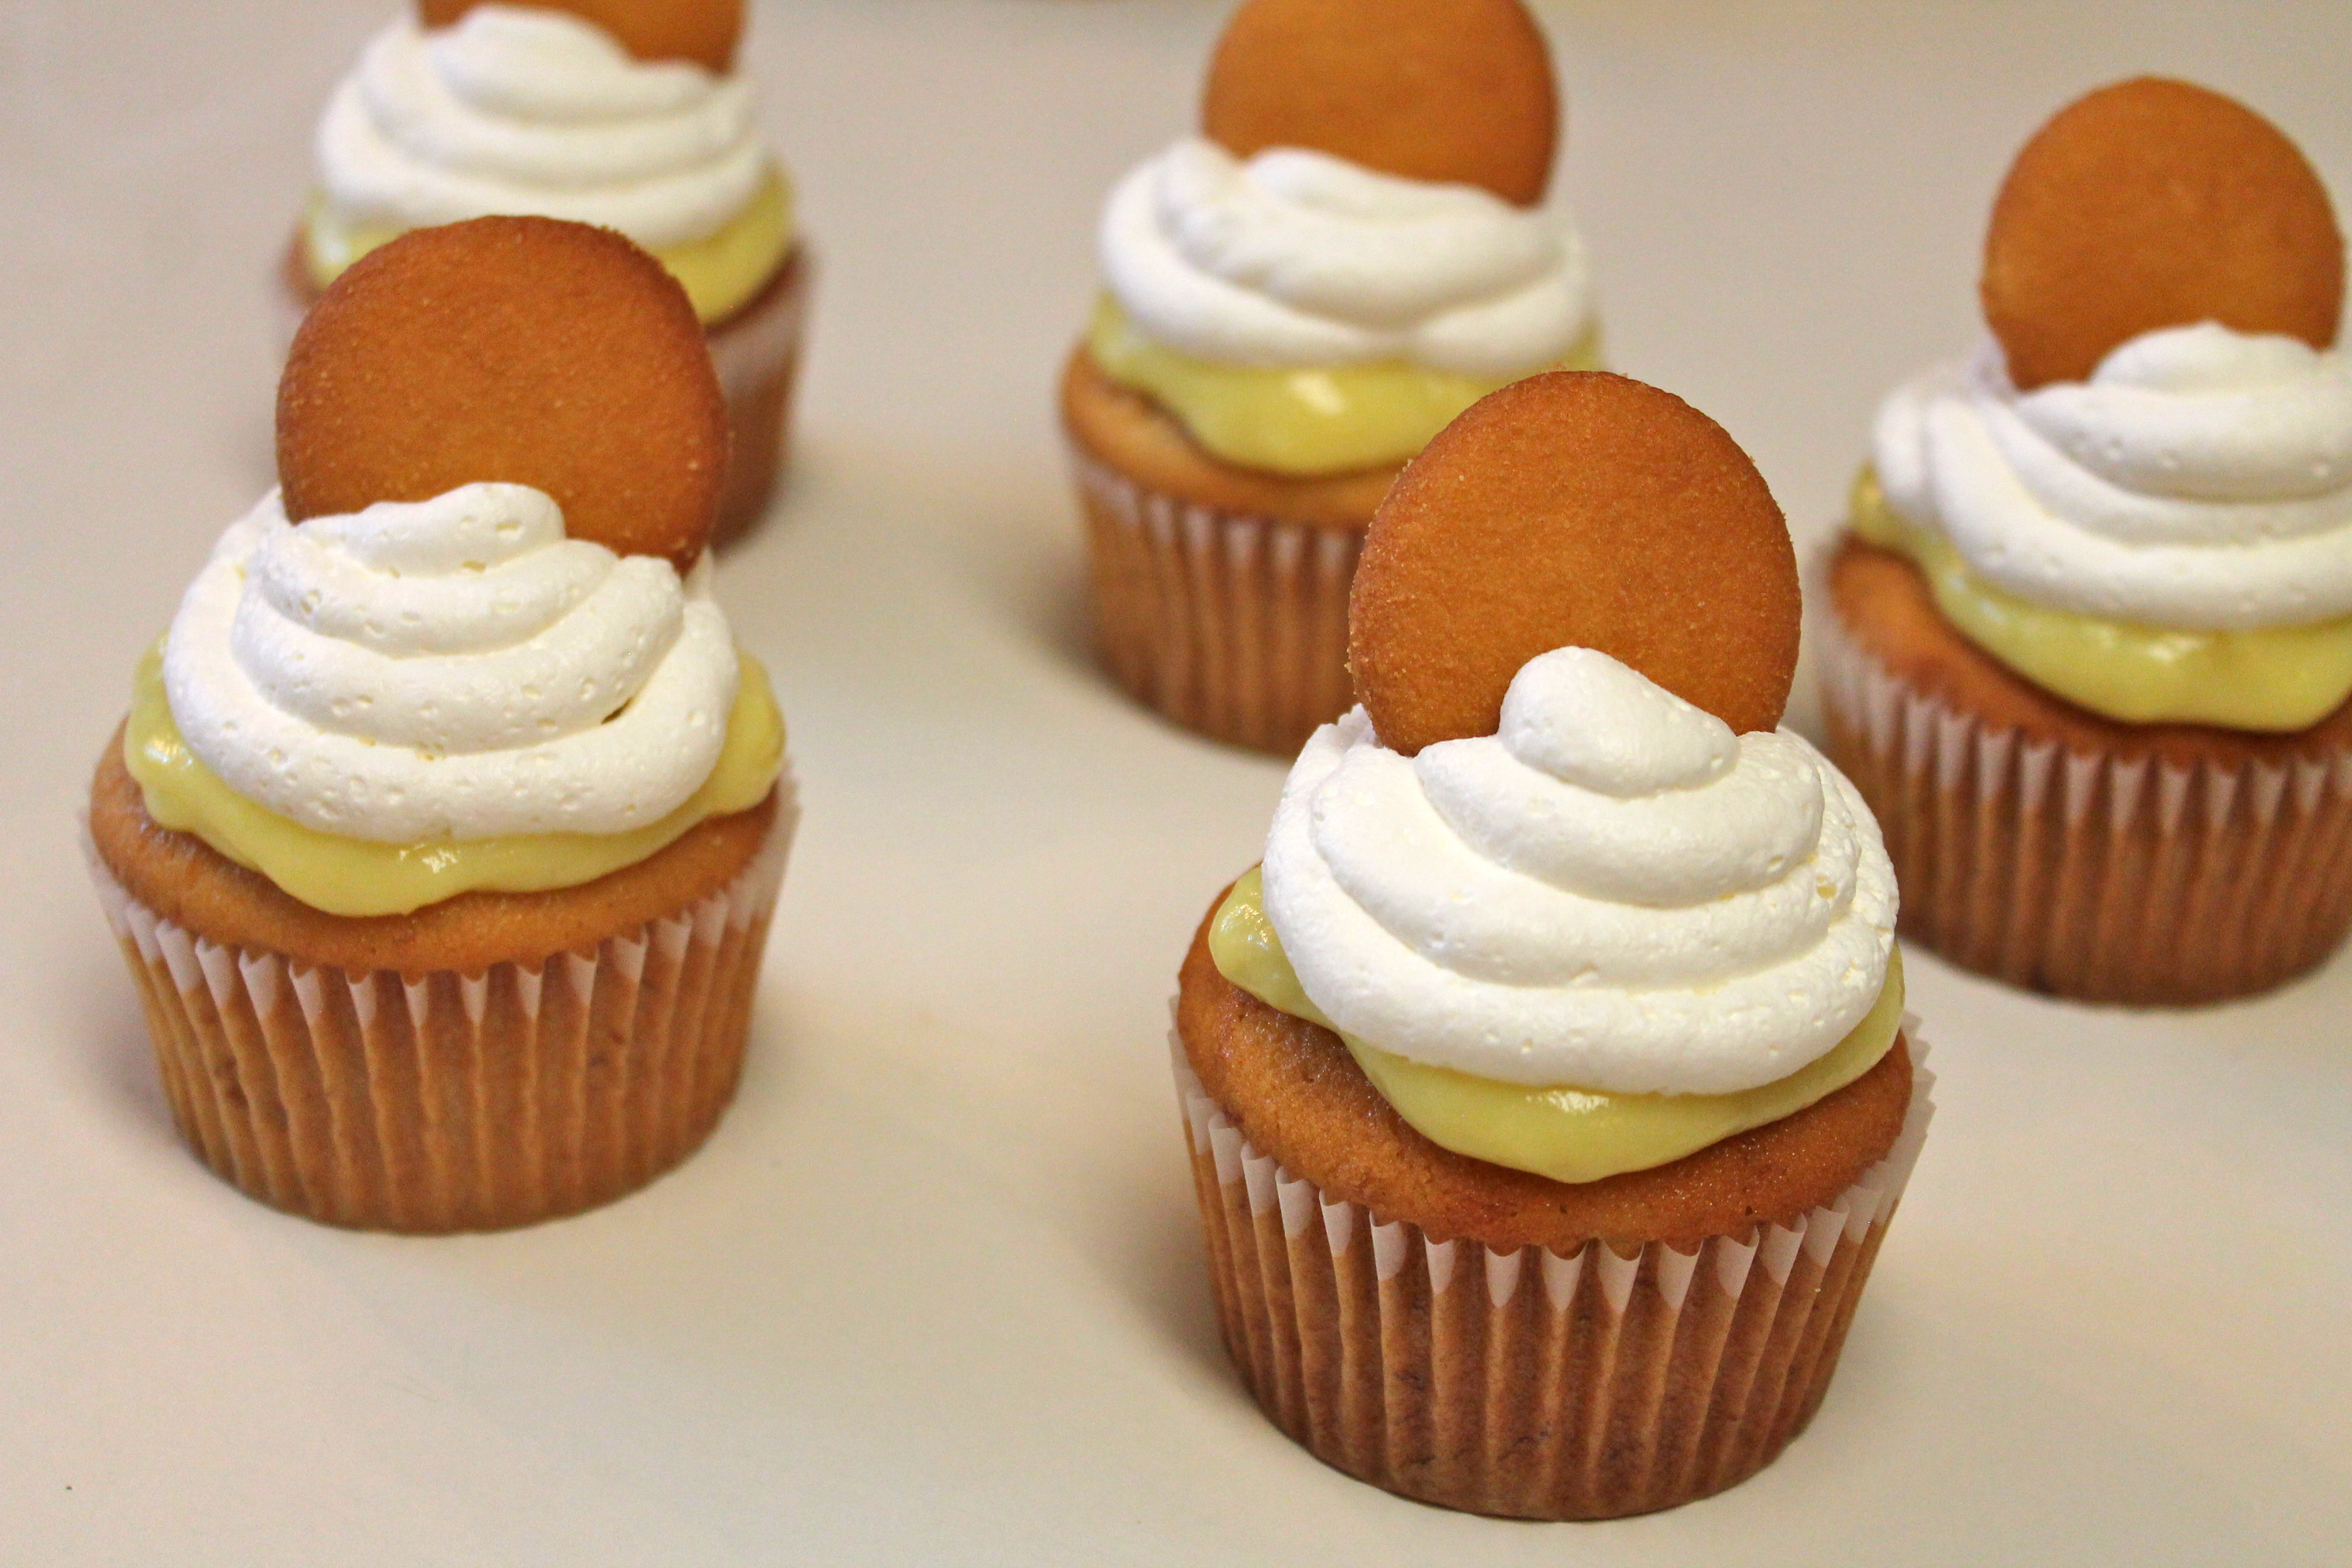 How To Make Cupcakes From Scratch  Banana Pudding Cupcakes